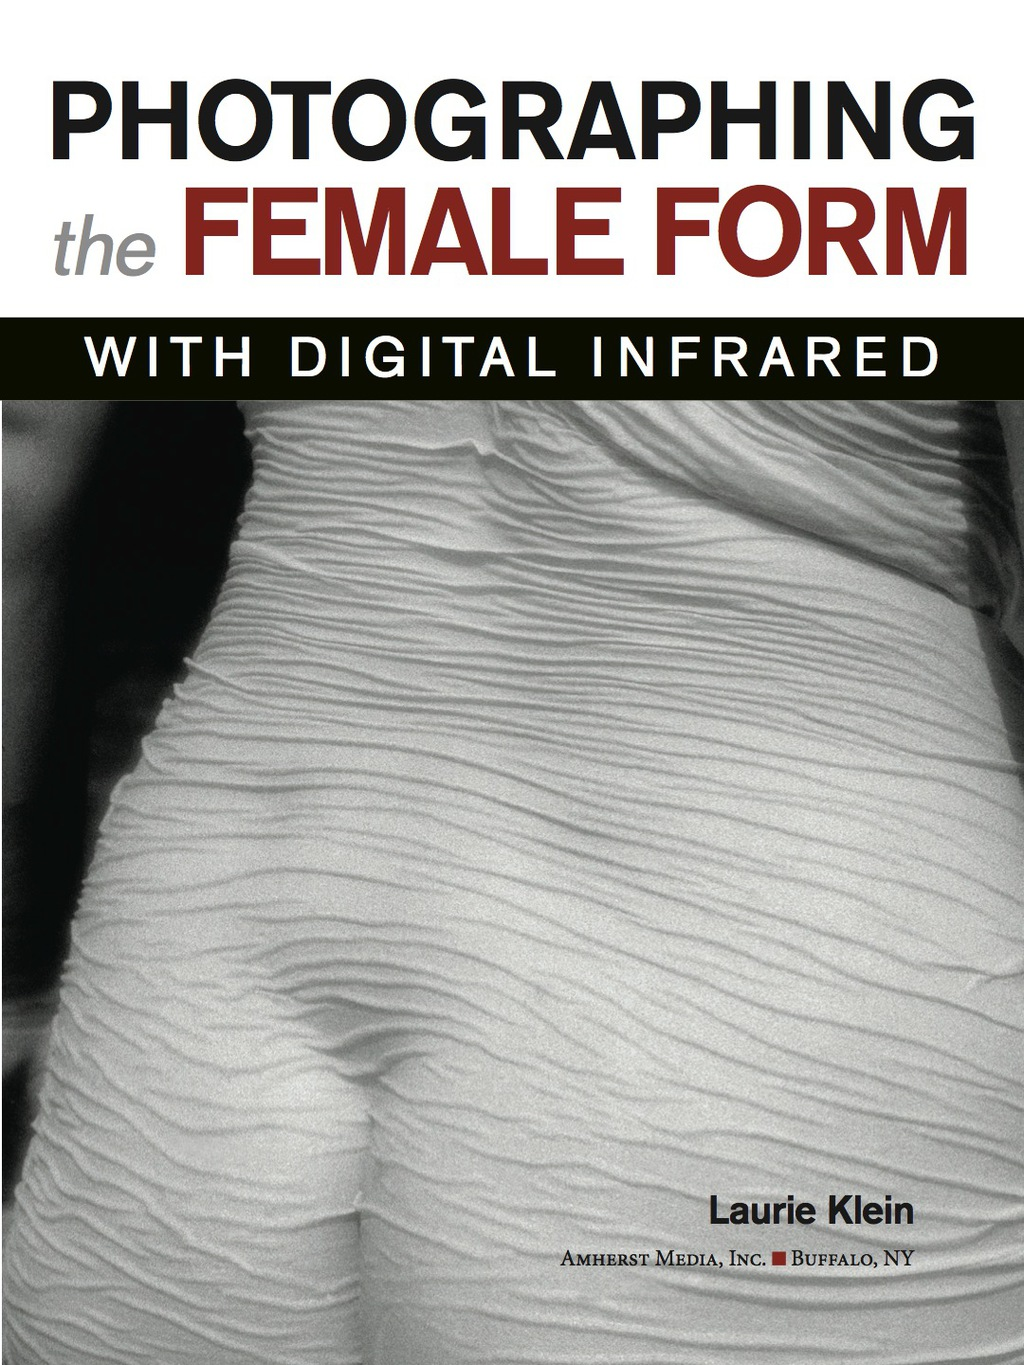 Photographing the Female Form with Digital Infrared (ebook) eBooks